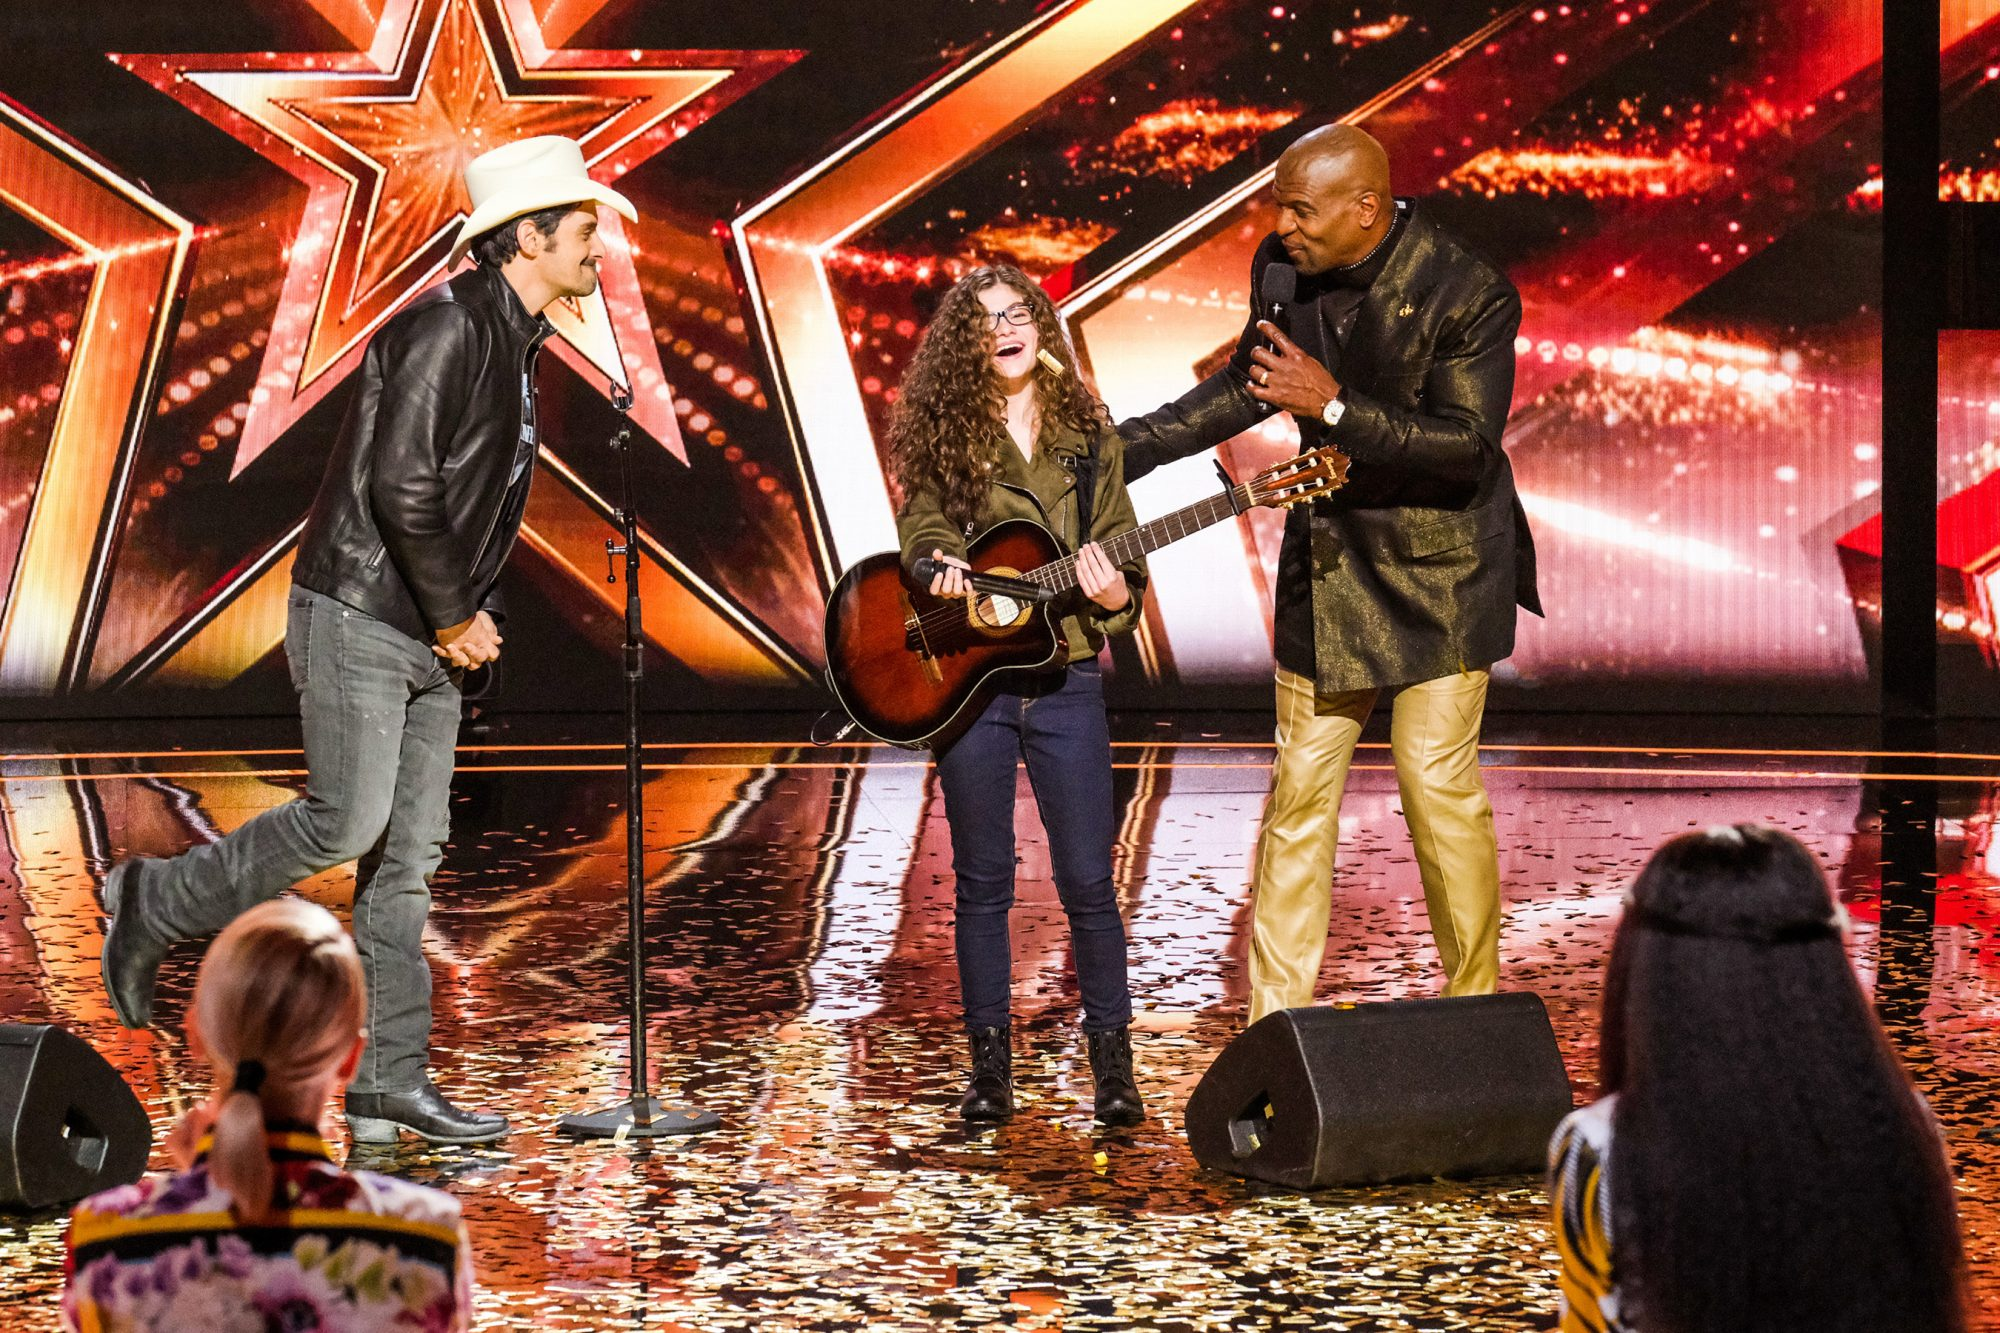 """AMERICA'S GOT TALENT -- """"Judge Cuts 1"""" Episode 1408 -- Pictured: (l-r) Brad Paisley, Sophie Pecora, Terry Crews -- (Photo by: Justin Lubin/NBC)"""